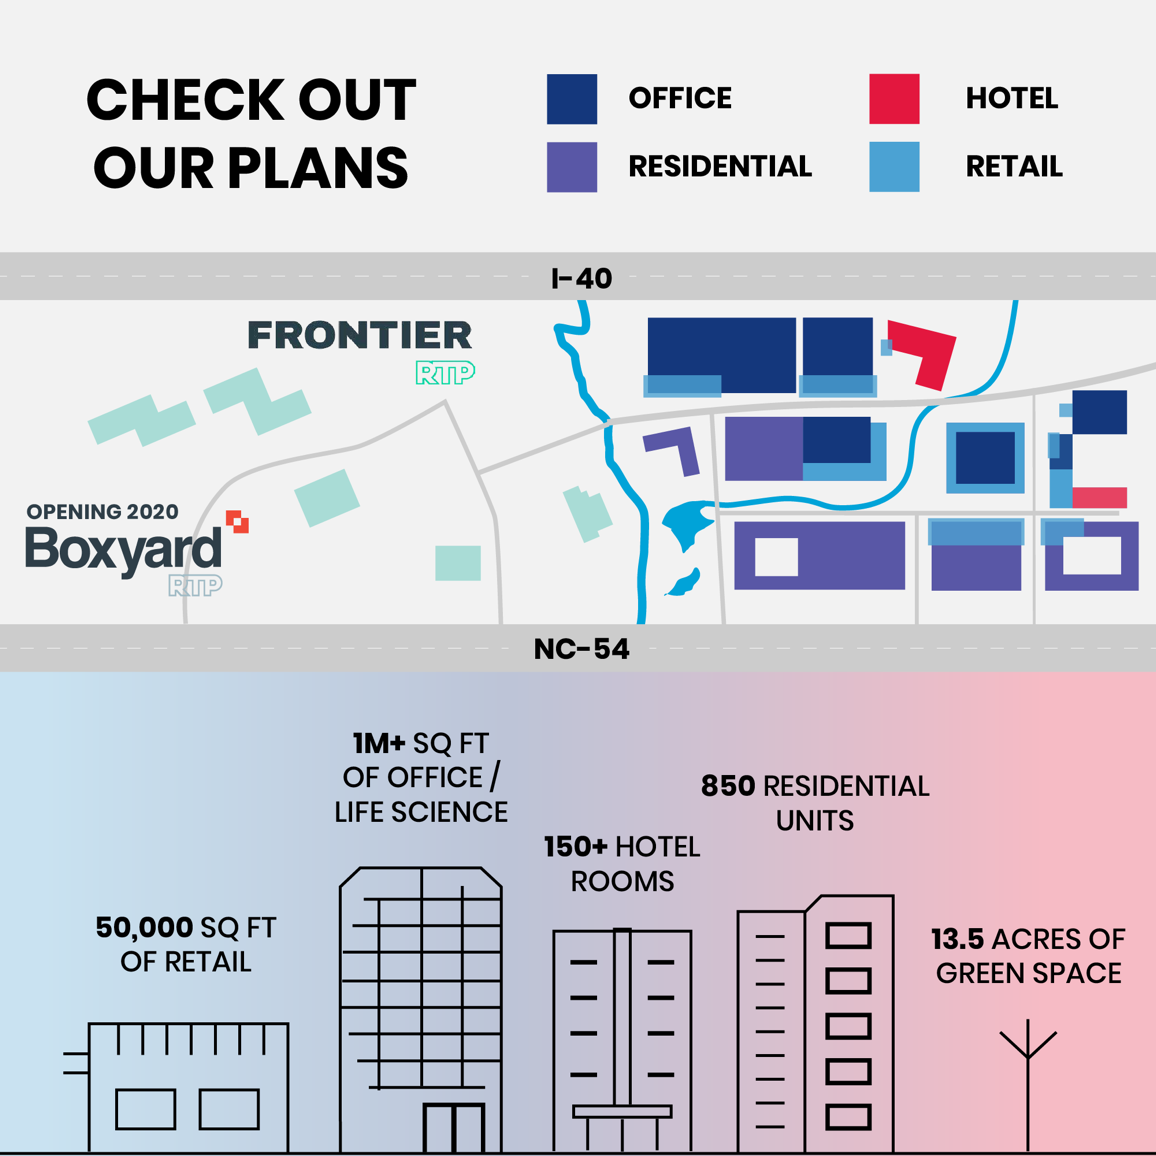 Check out our plans. 50,000 square feet of retail, 1 million+ square feet of office / life science, 150+ hotel rooms, 850 residential units, and 13.5 acres of green space.